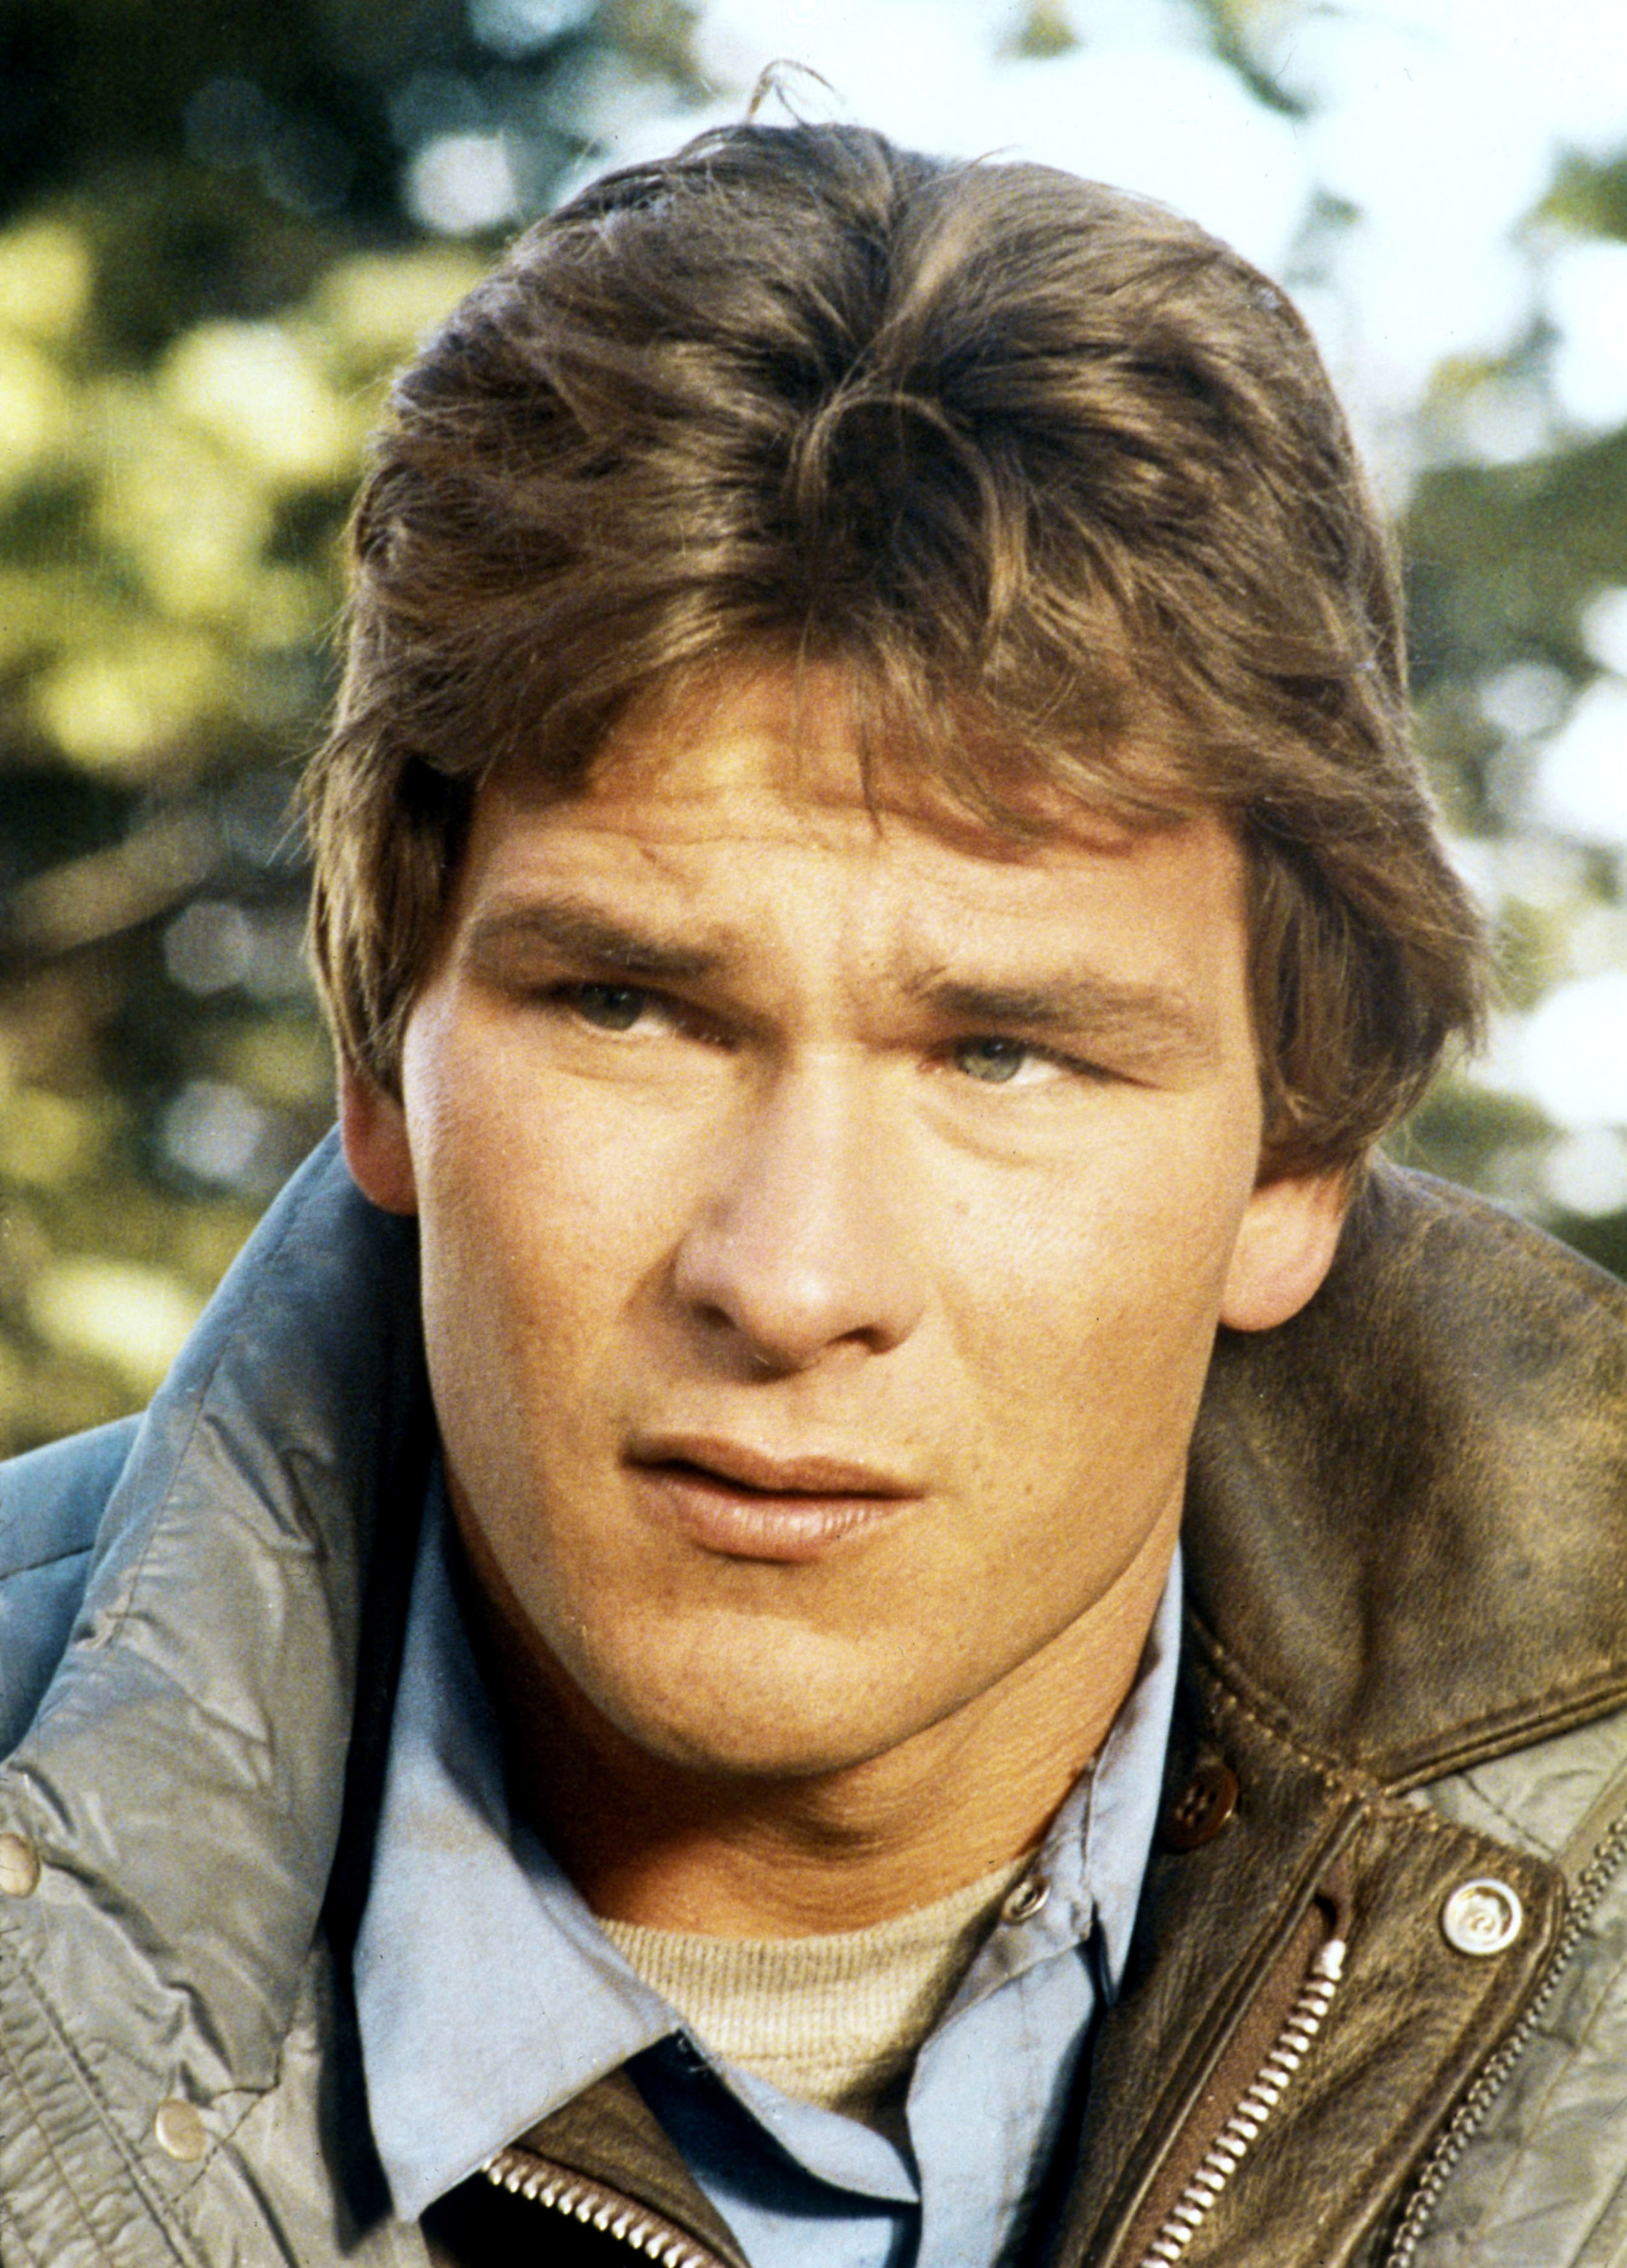 Patrick Swayze A Life In Pictures: 10 Things You Didn't Know About Patrick Swayze That Will